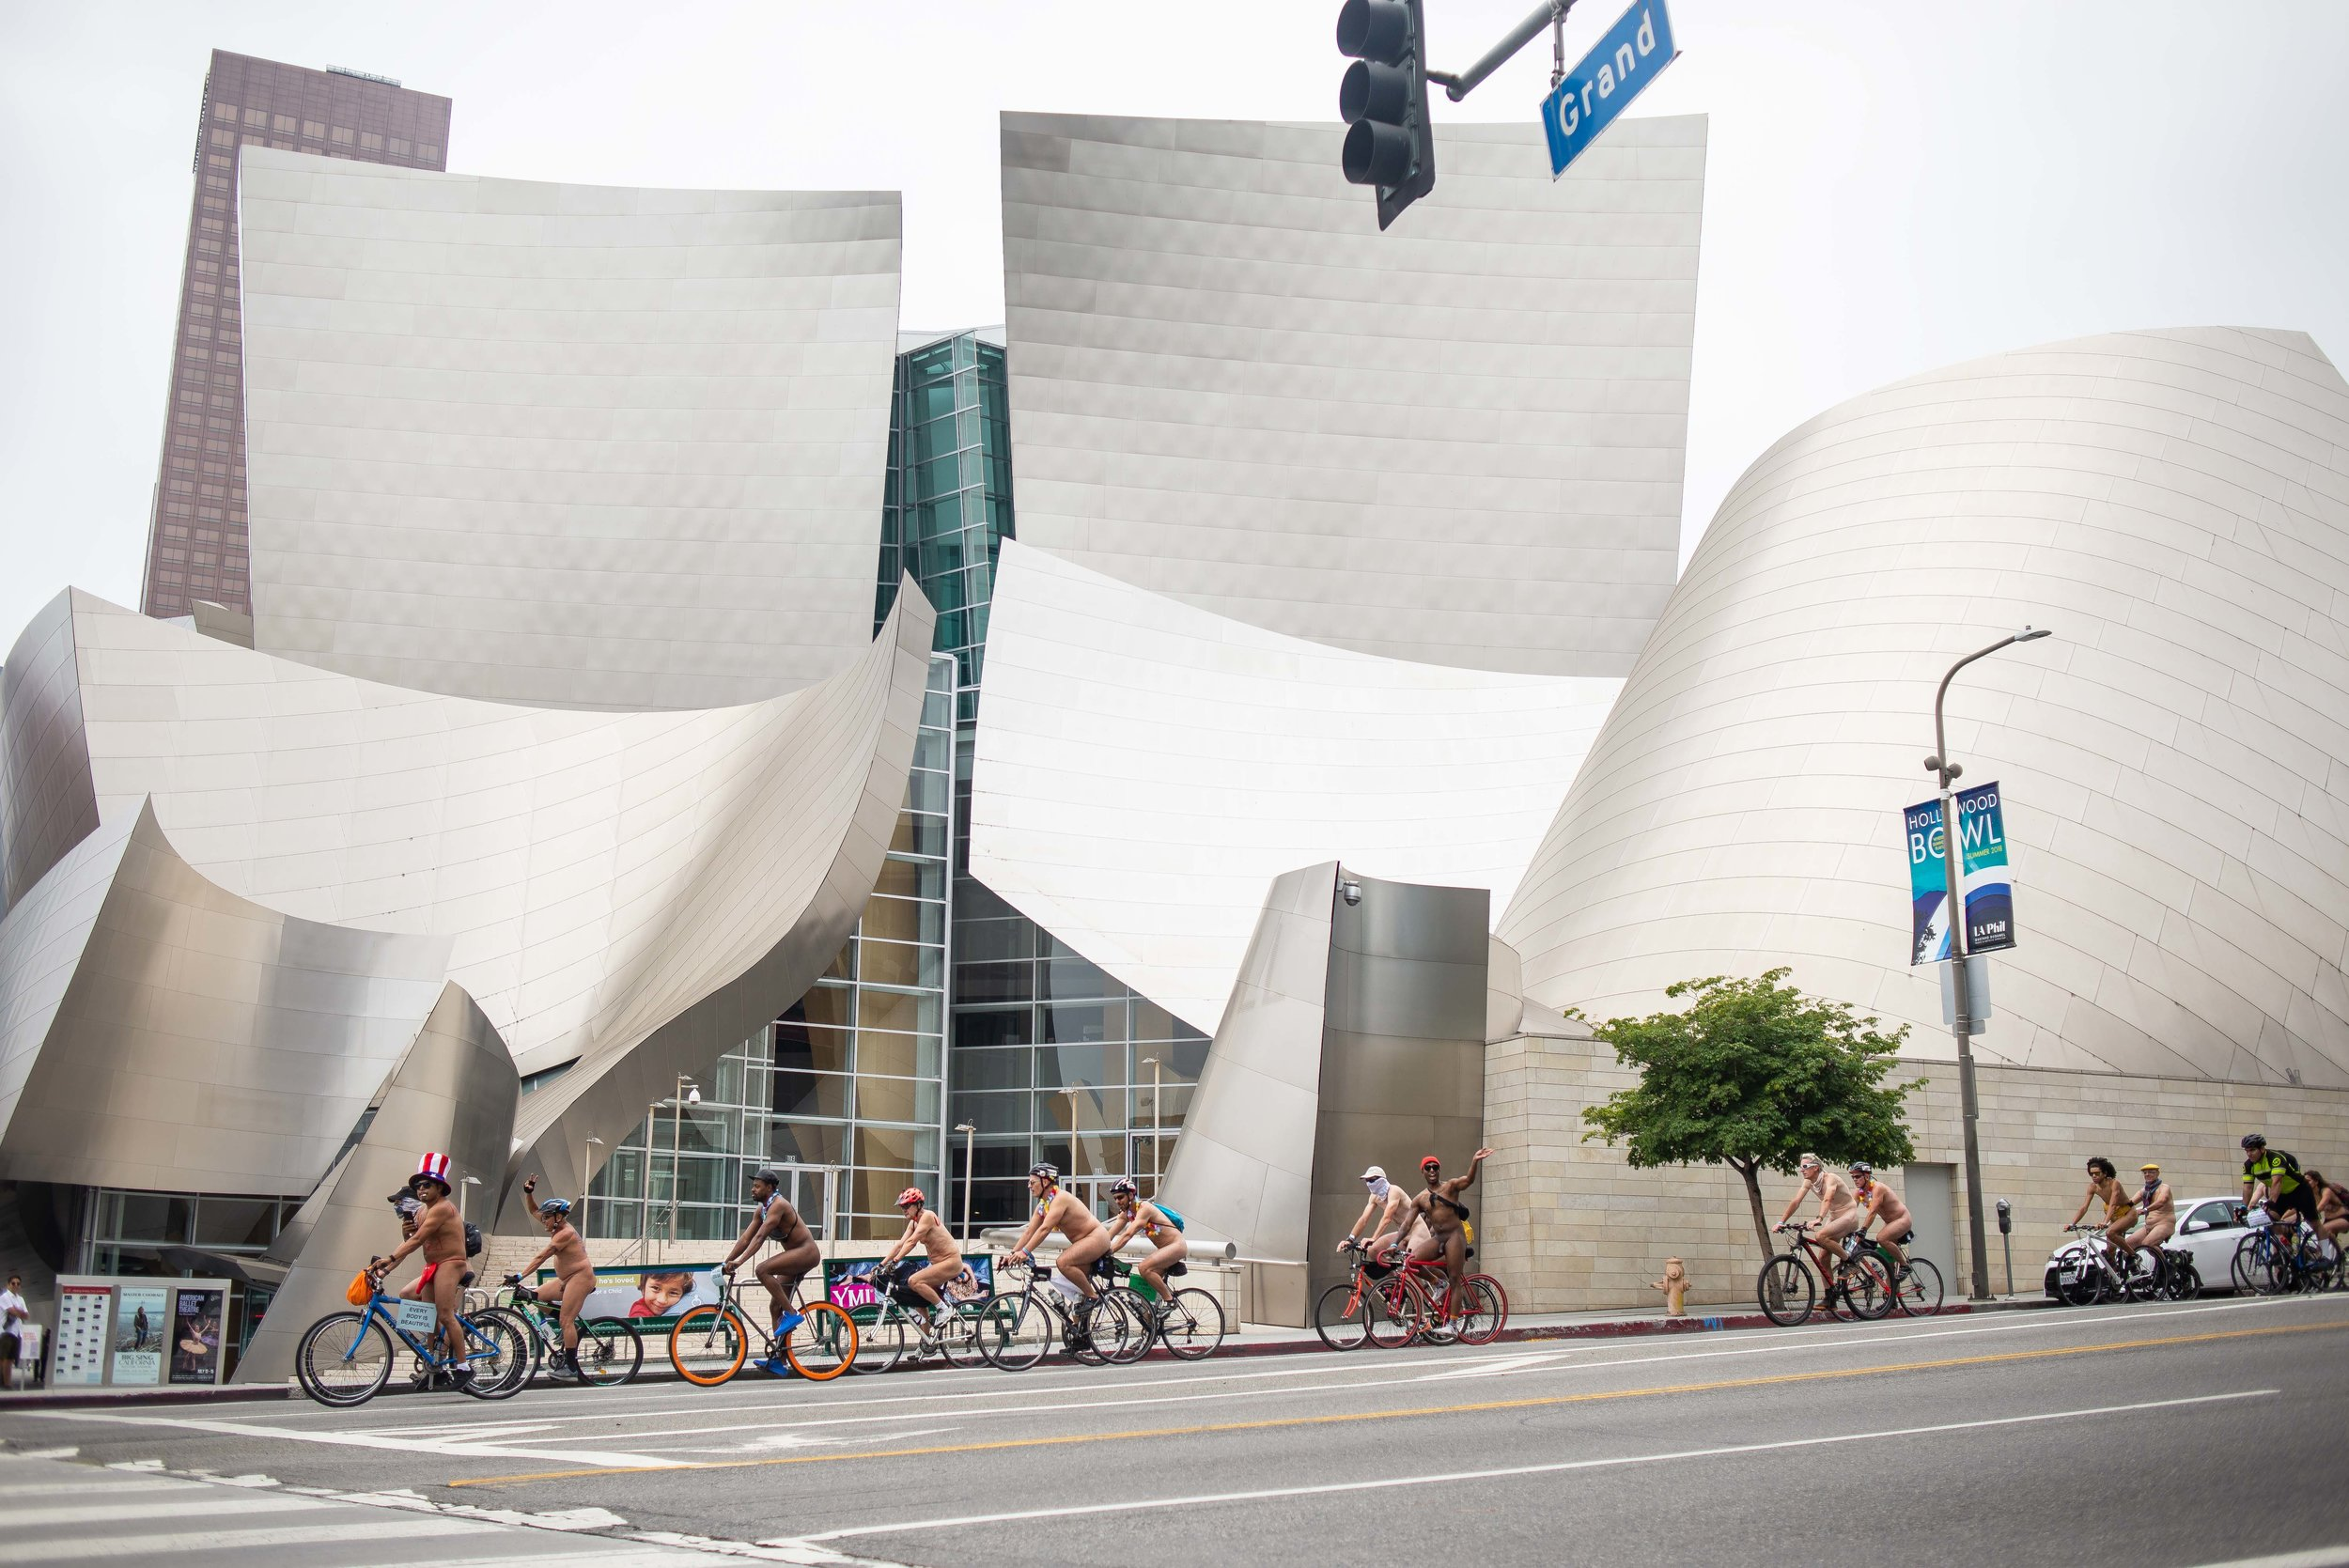 Participants of the World Naked Bike Ride pass the Walt Disney Concert Hall in downtown Los Angeles, Calif. on June 23, 2018.